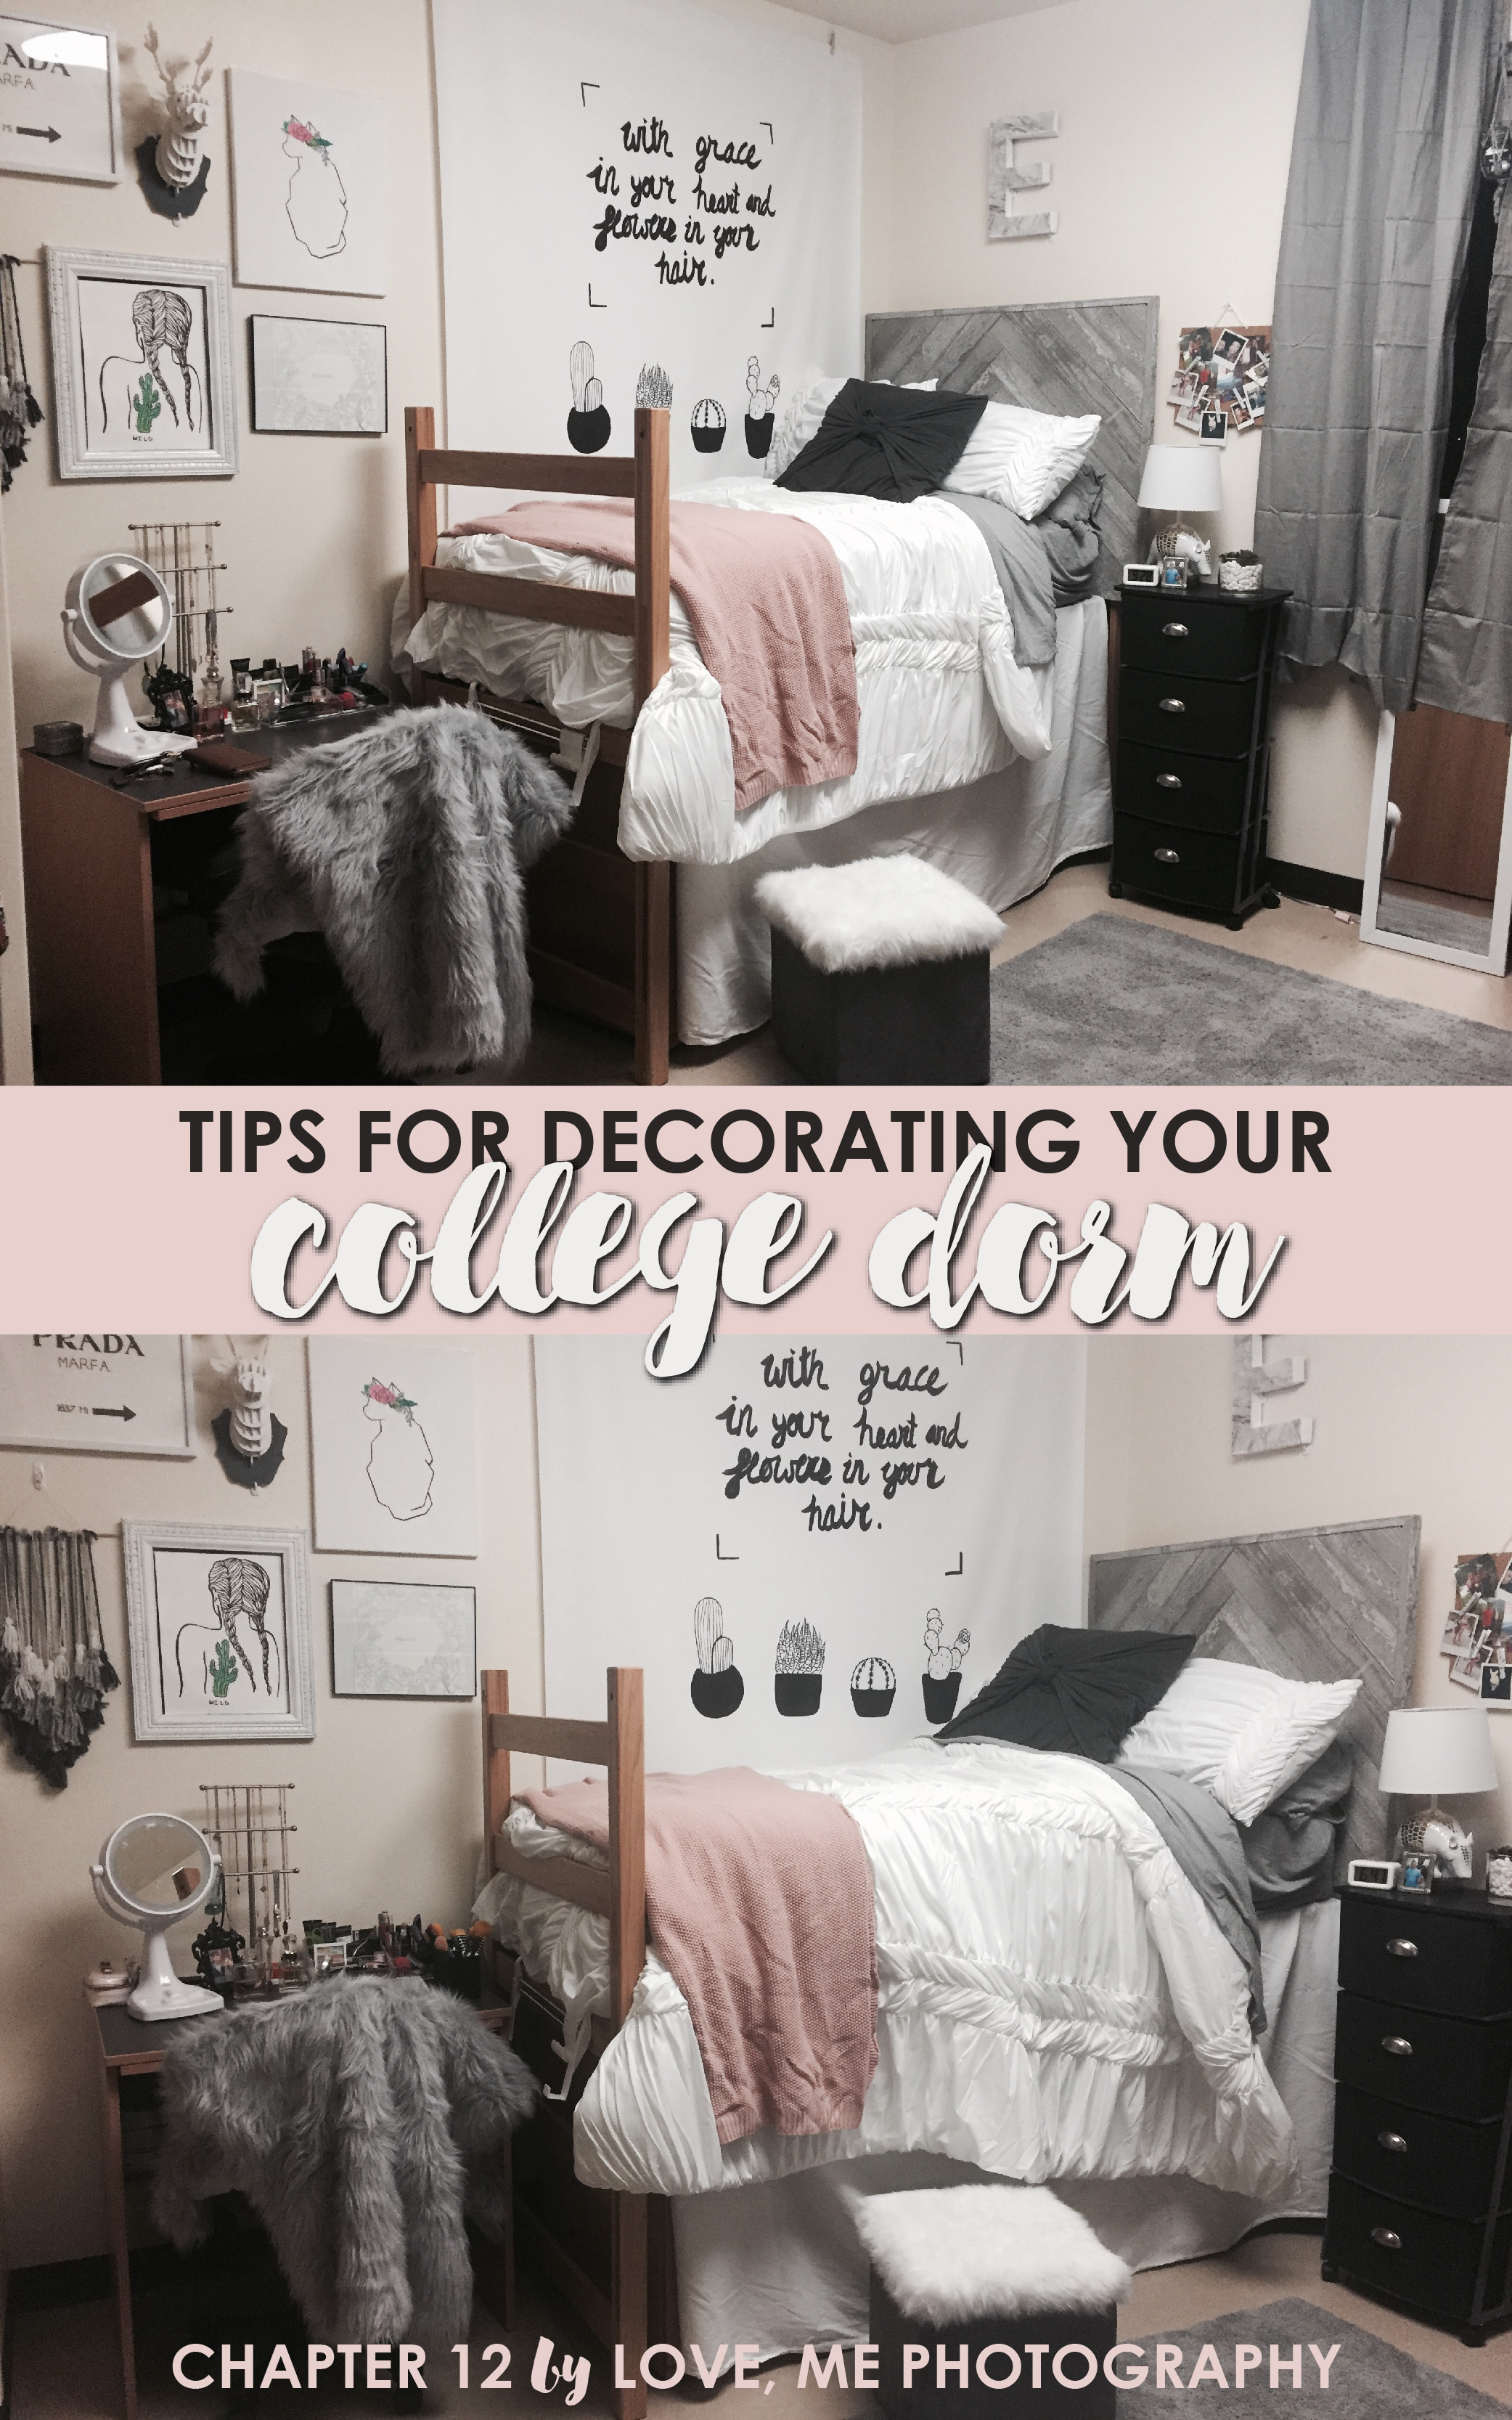 Chapter 12 Dorm Room Ideas-01